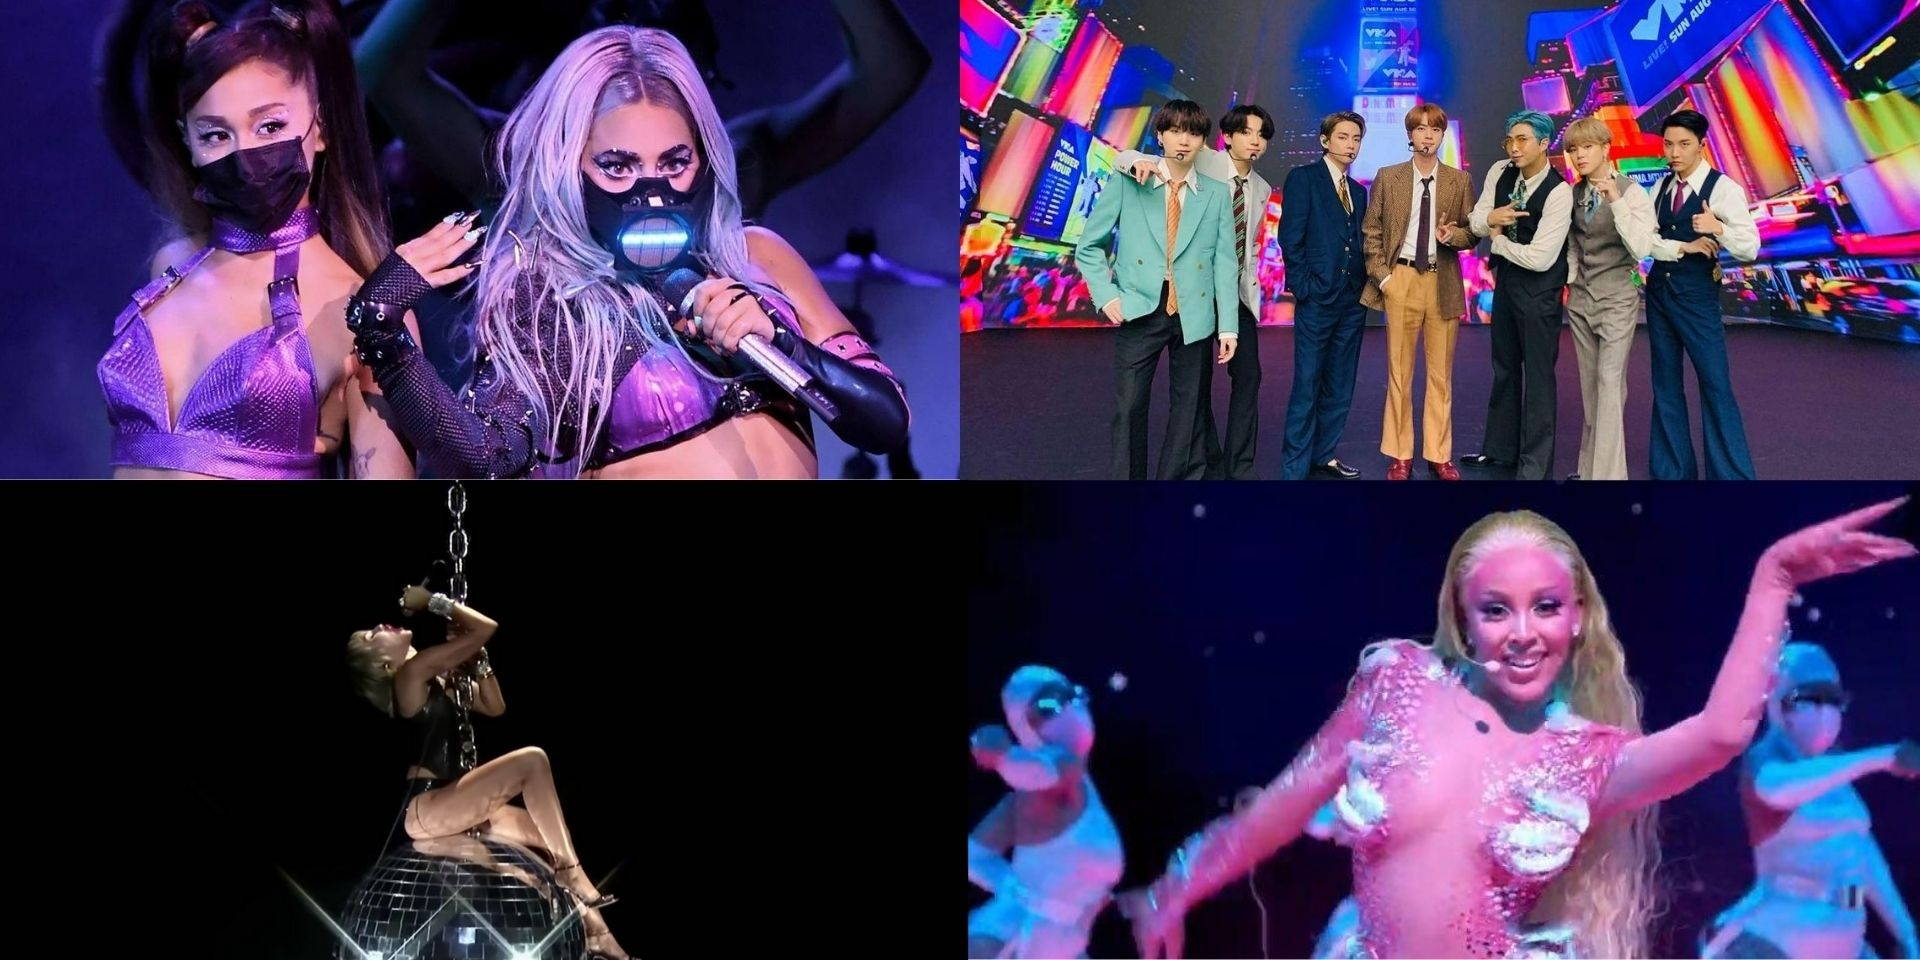 5 must-watch performances from the 2020 VMAs: Lady Gaga, Ariana Grande, BTS, and more